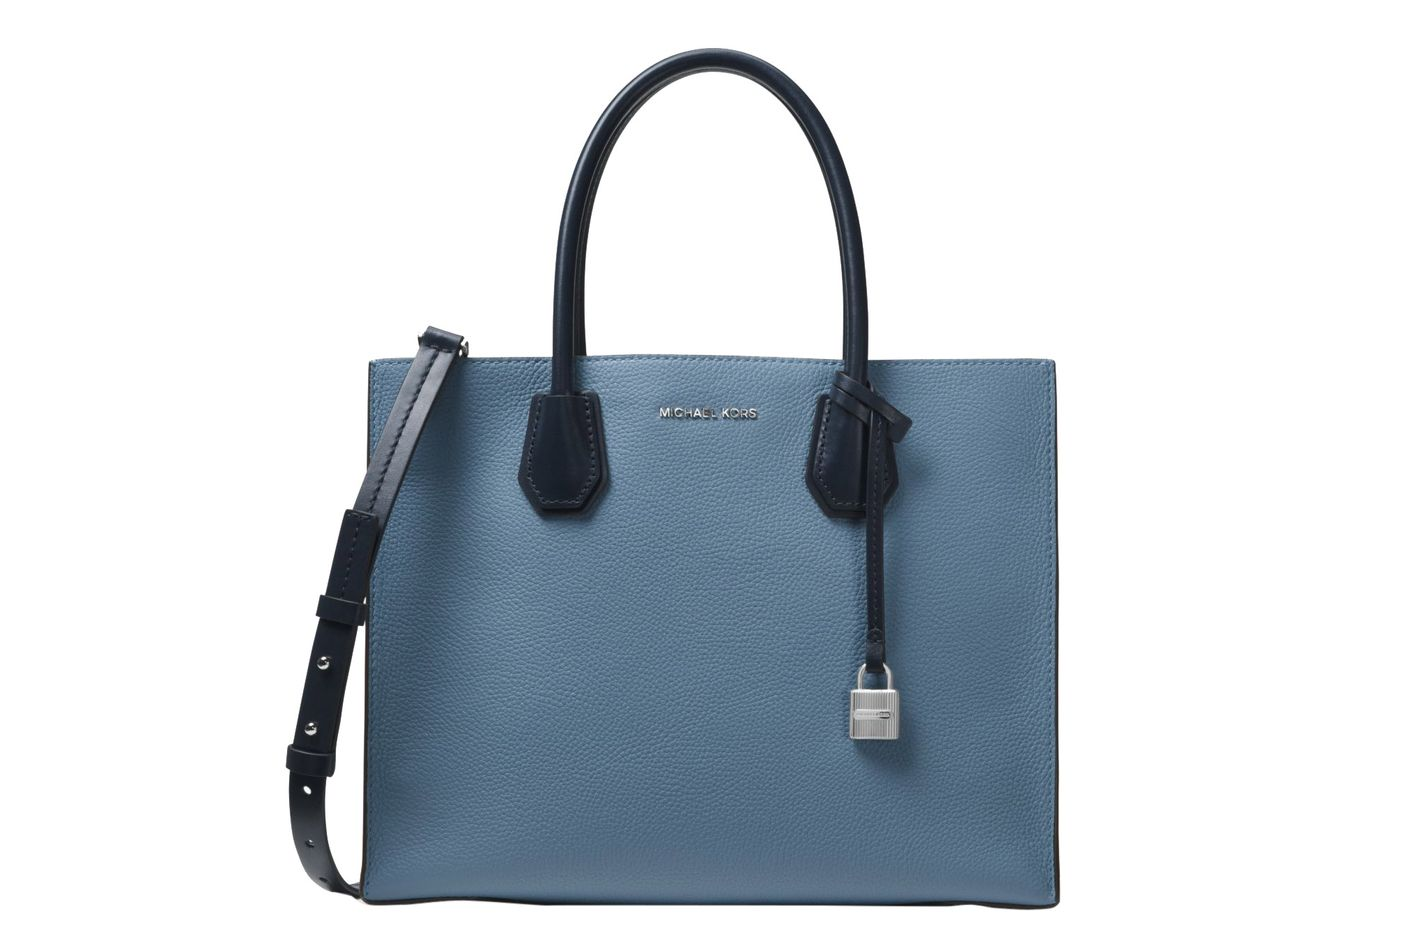 f16e0146a 12 Best Job Interview Handbags for Women